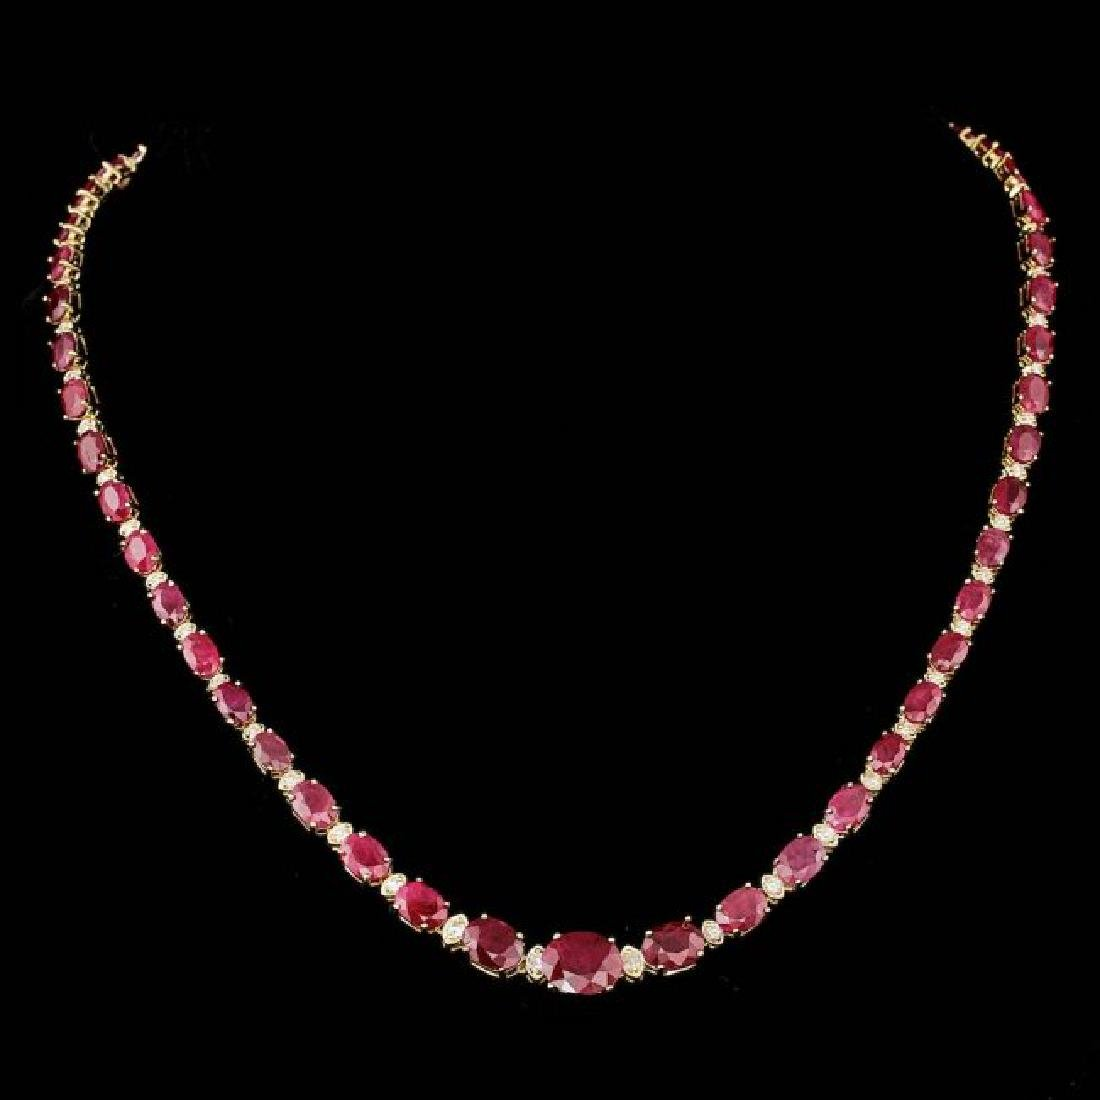 14k Gold 33.00ct Ruby 1.55ct Diamond Necklace